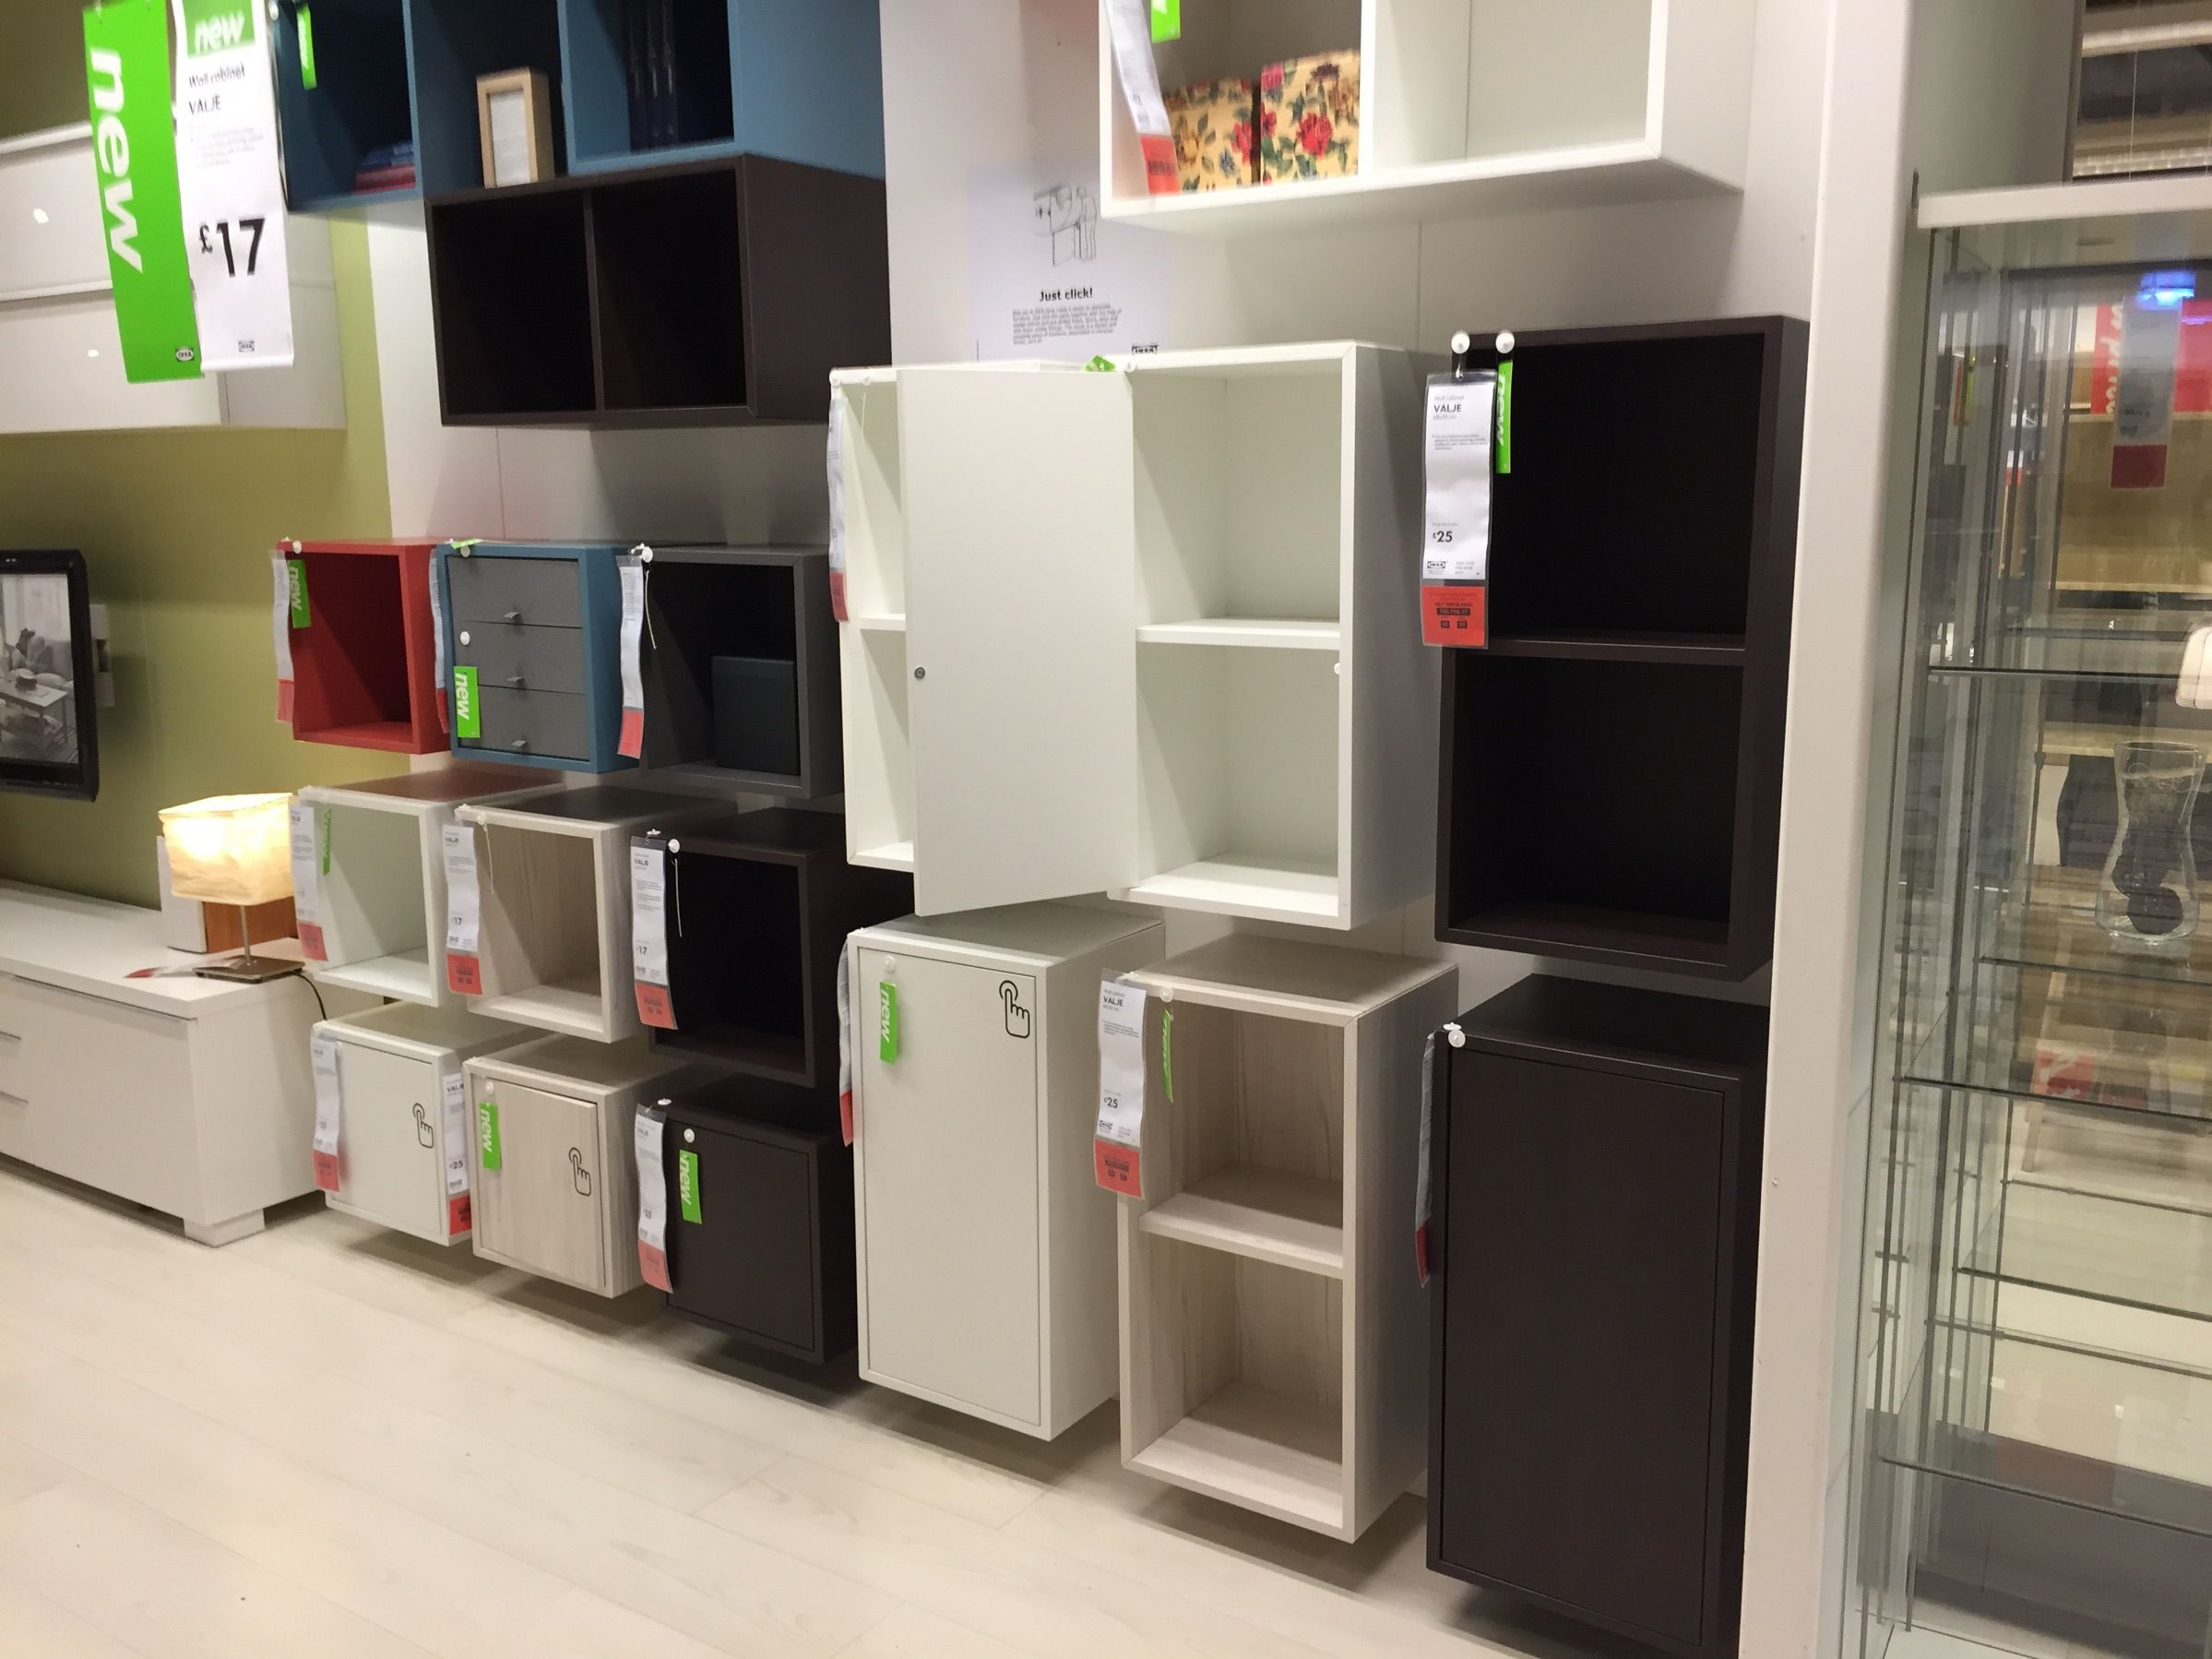 Ikea Valje Wall Units These Are Interesting We Could Use - Ikea Valje Schublade